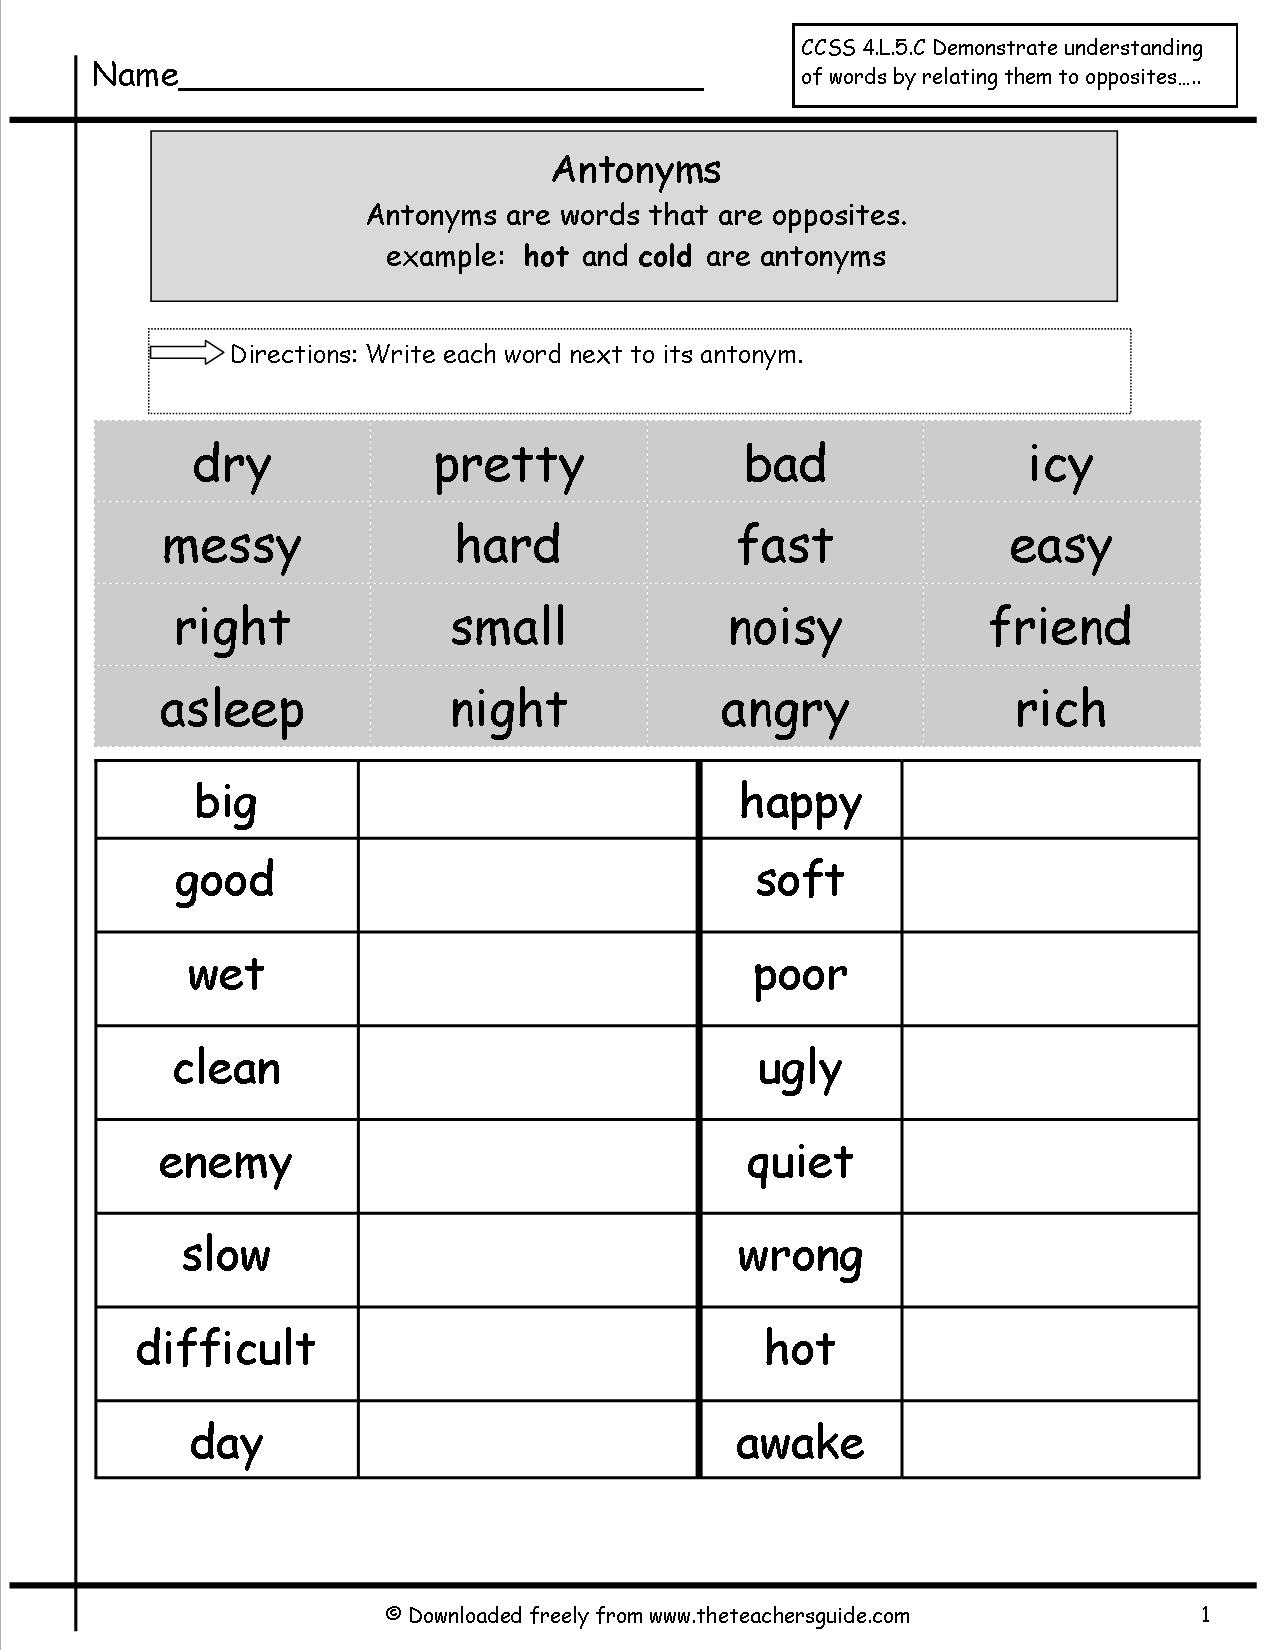 Antonyms And Synonyms Worksheets From The Teacher's Guide | Free Printable Antonym Worksheets